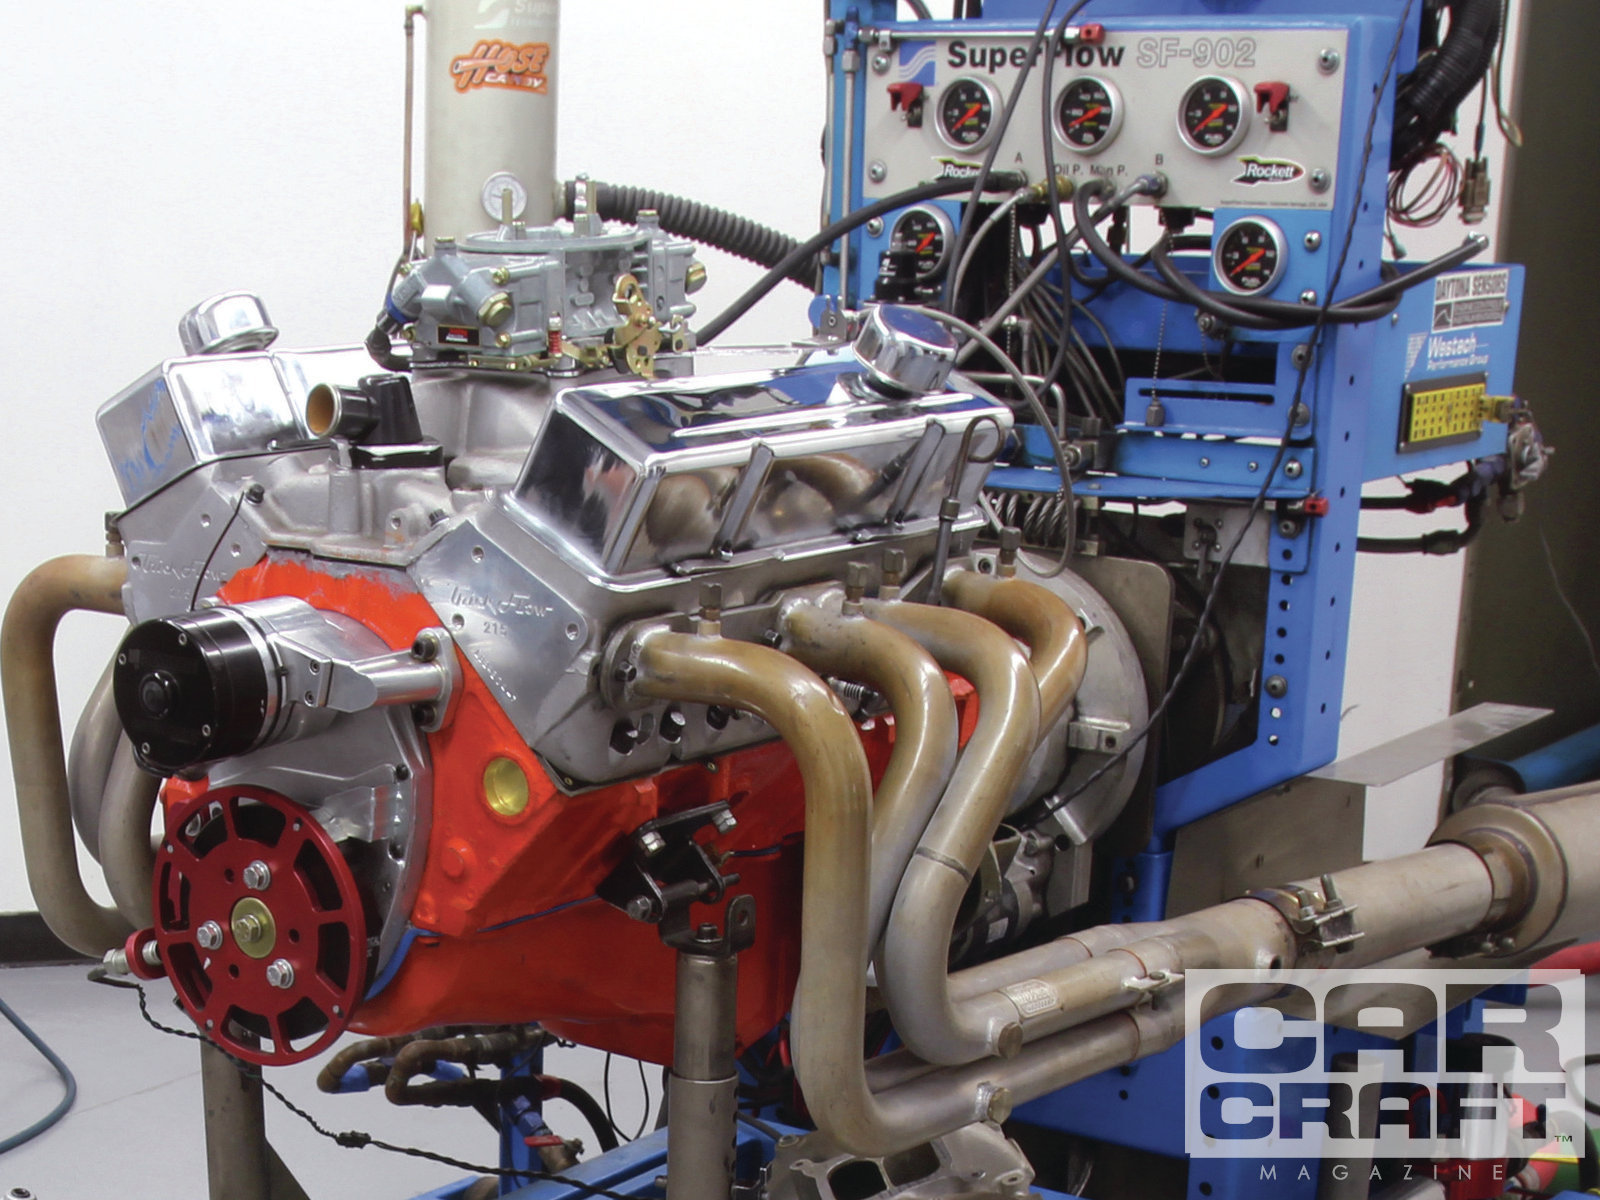 Dual Plane Intake Manifold Comparisons Hot Rod Network 3 5l Engine Oil Flow Diagram Through It All Our Rodney 406 Braved More Than 150 Dyno Pulls And We